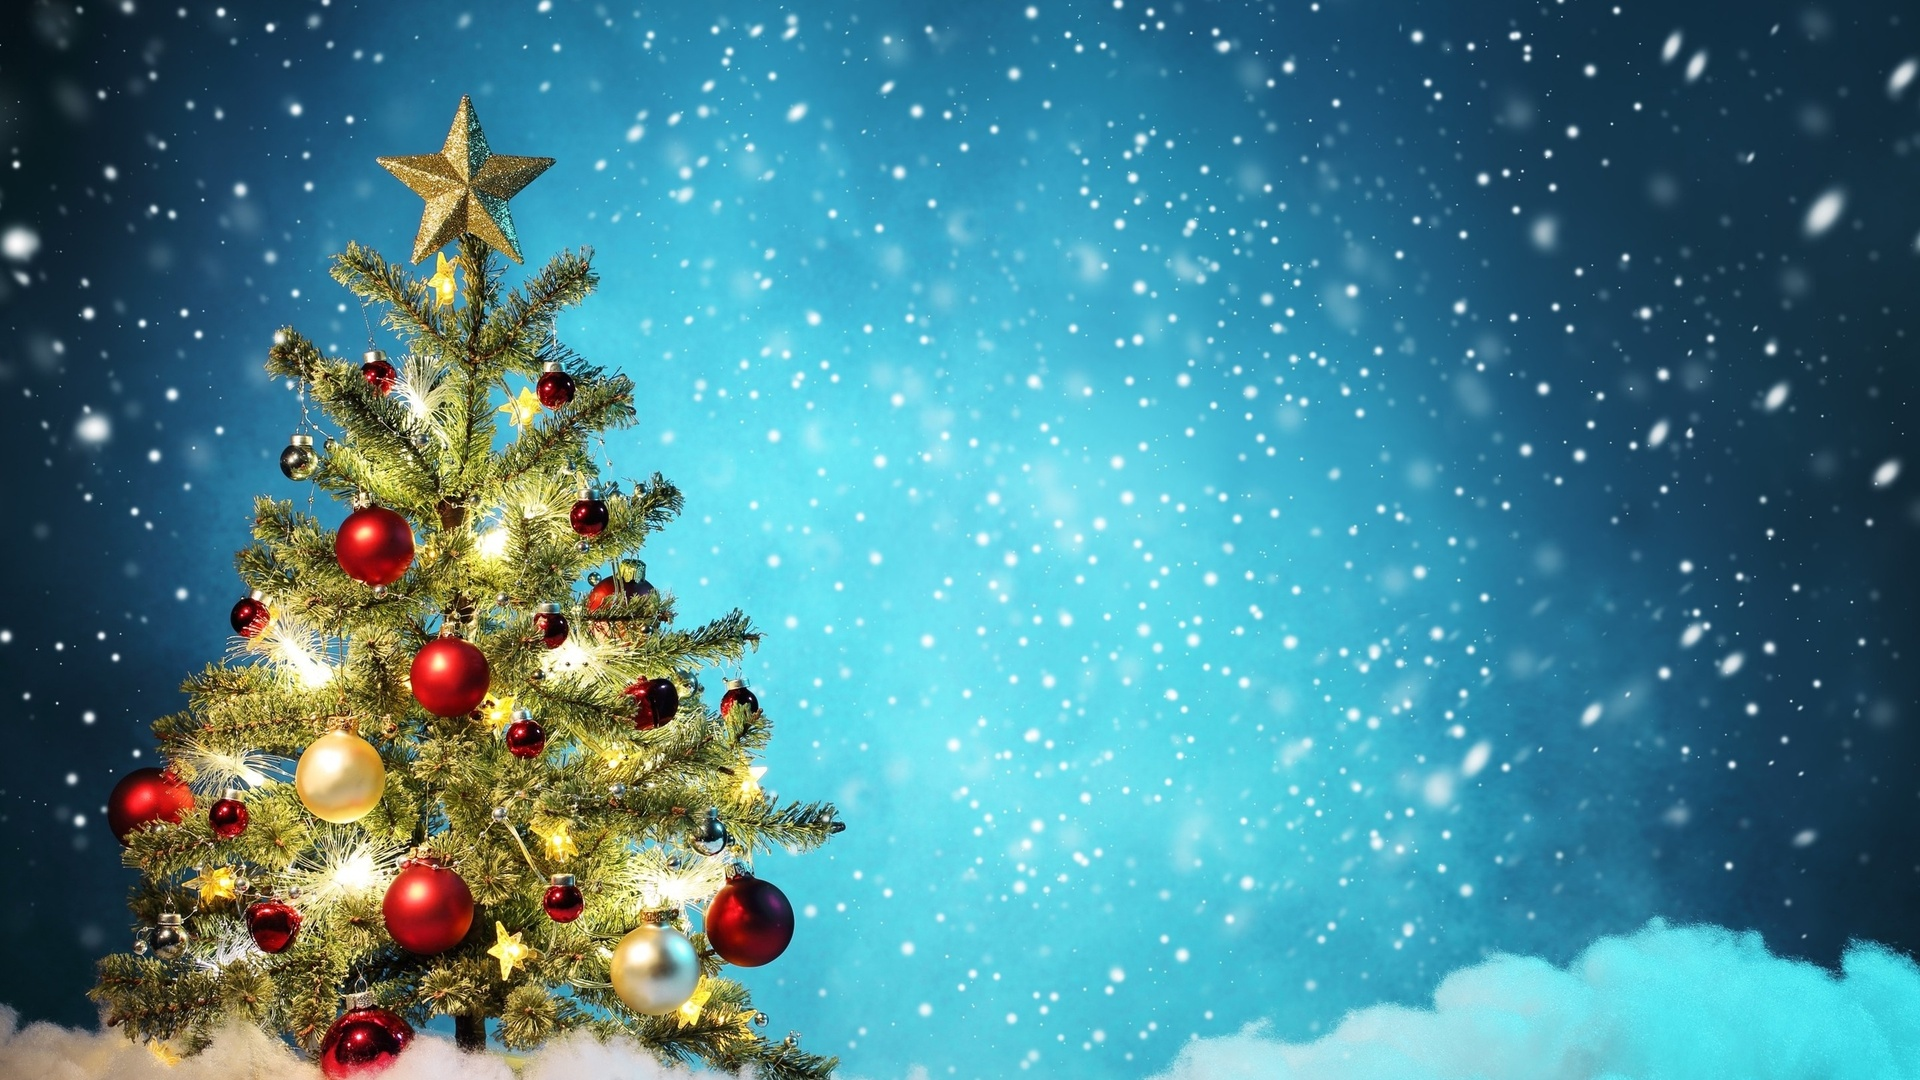 Download · Images for Gt Christmas Tree Wallpaper ...